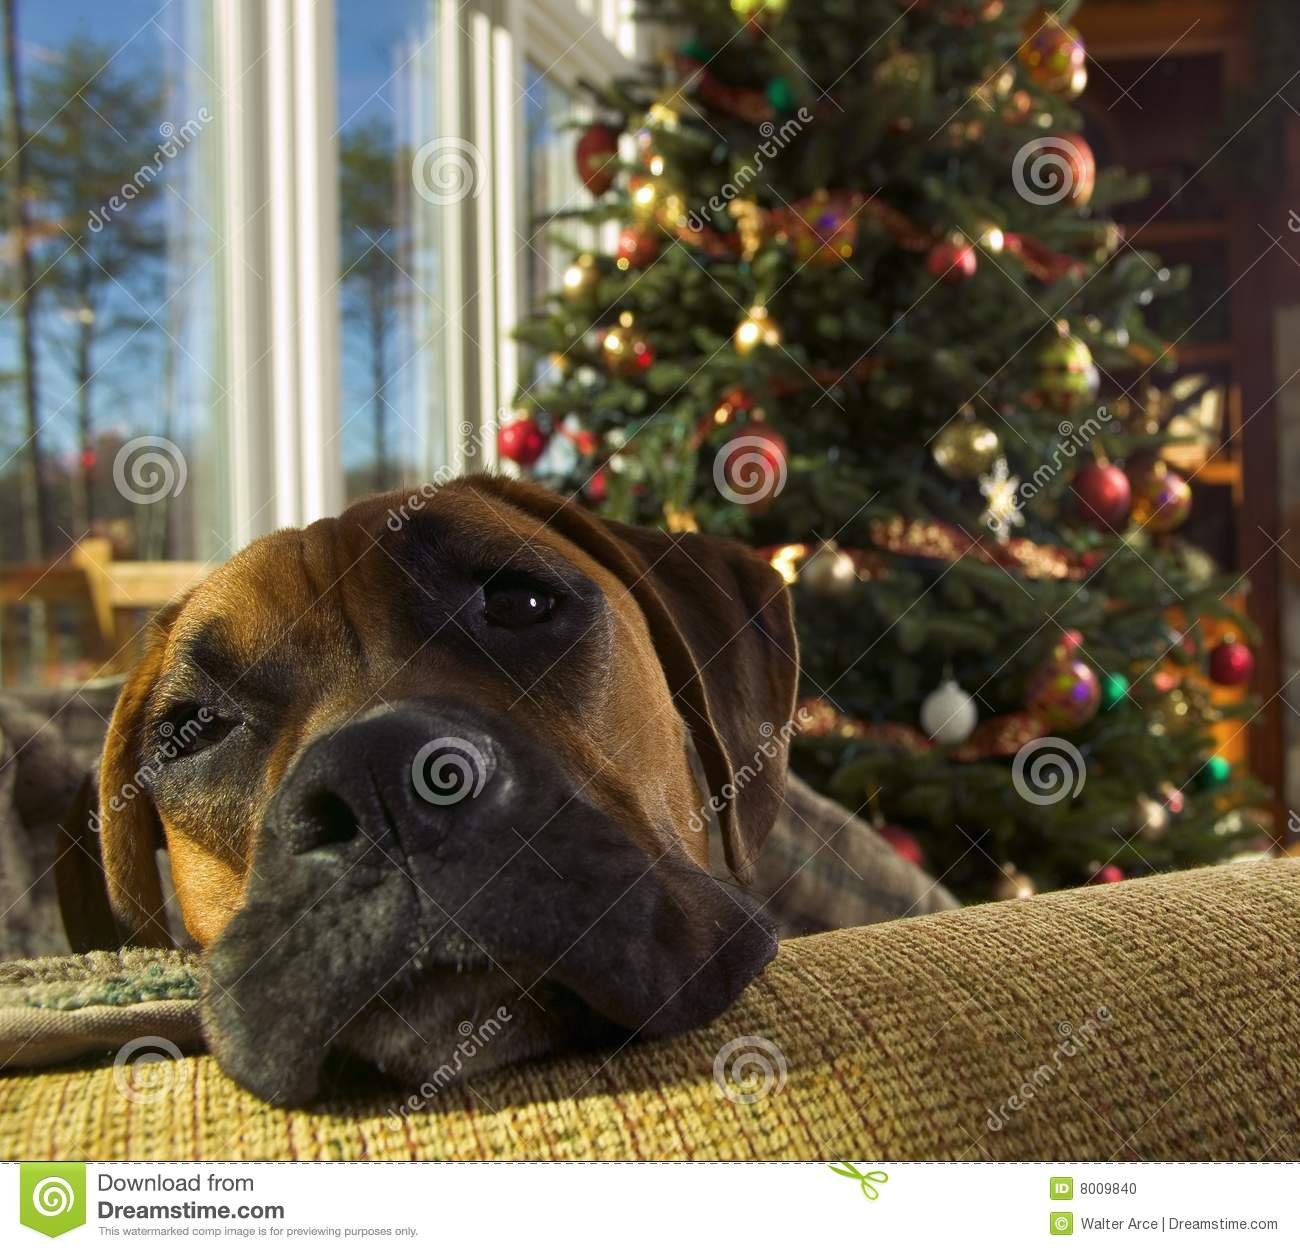 boxer hund am weihnachten stockfoto bild von hund. Black Bedroom Furniture Sets. Home Design Ideas